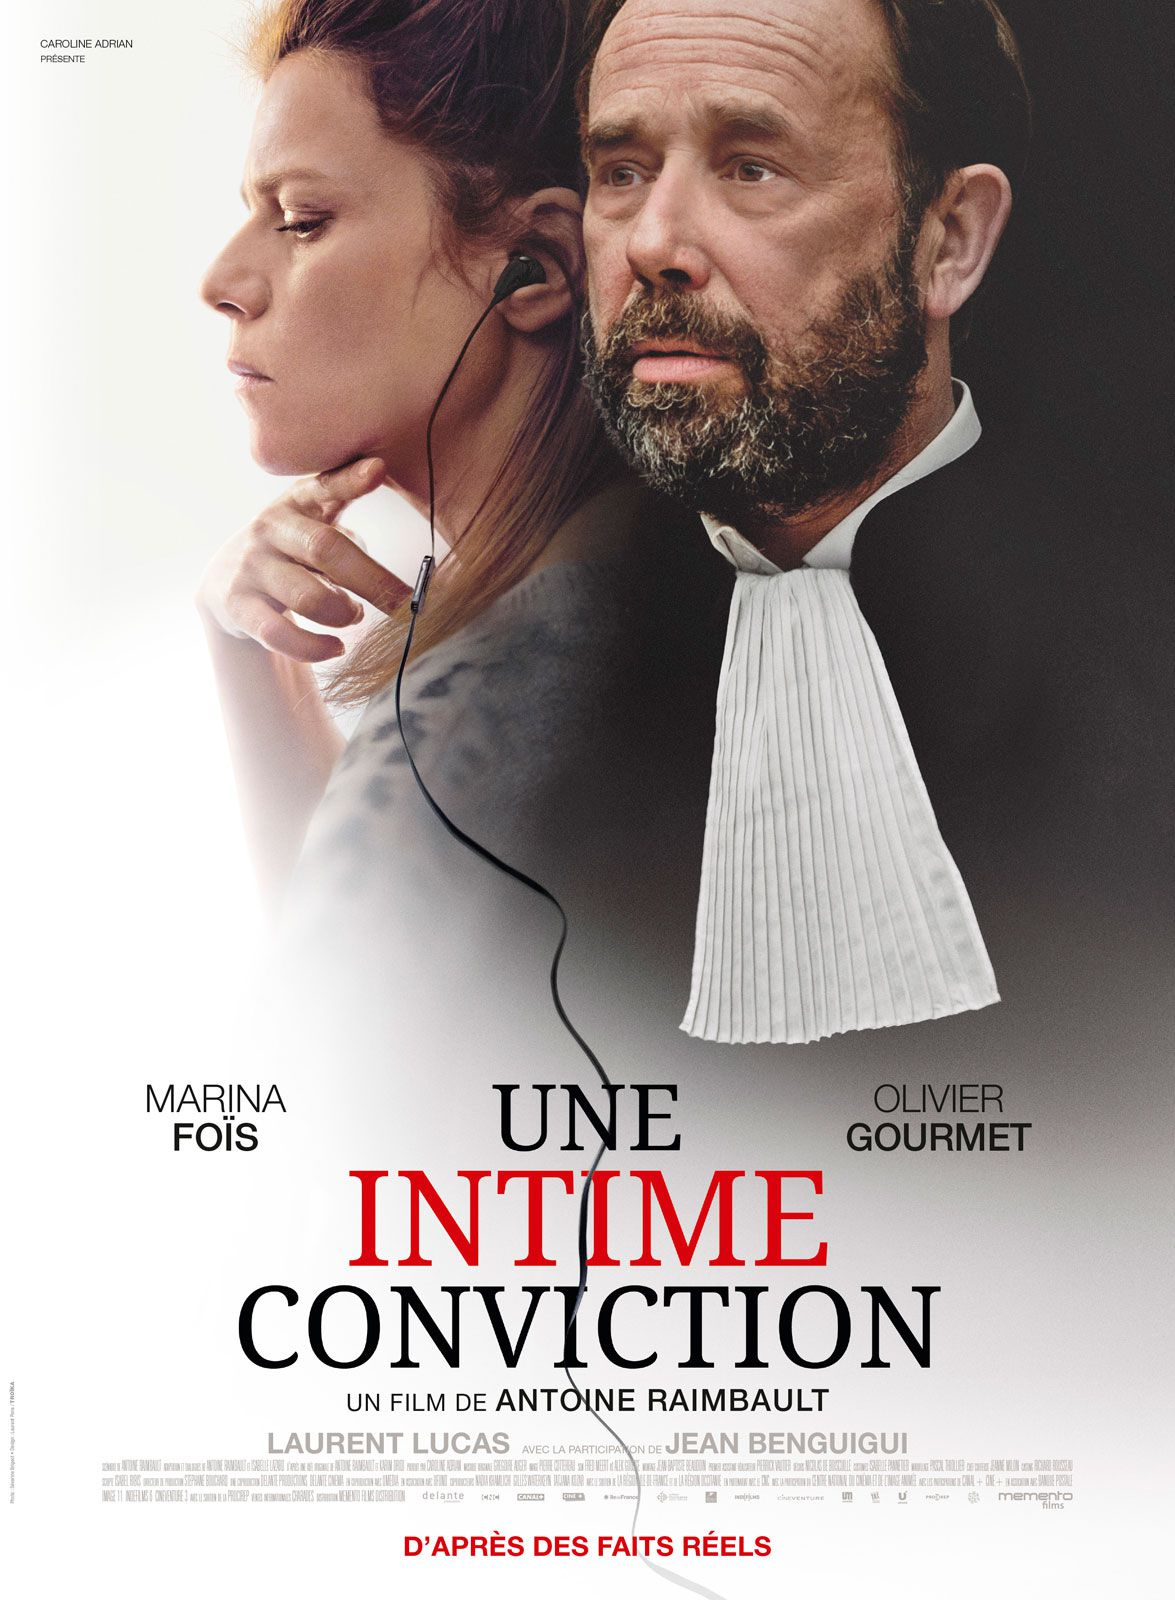 Une intime conviction - Film (2019) streaming VF gratuit complet